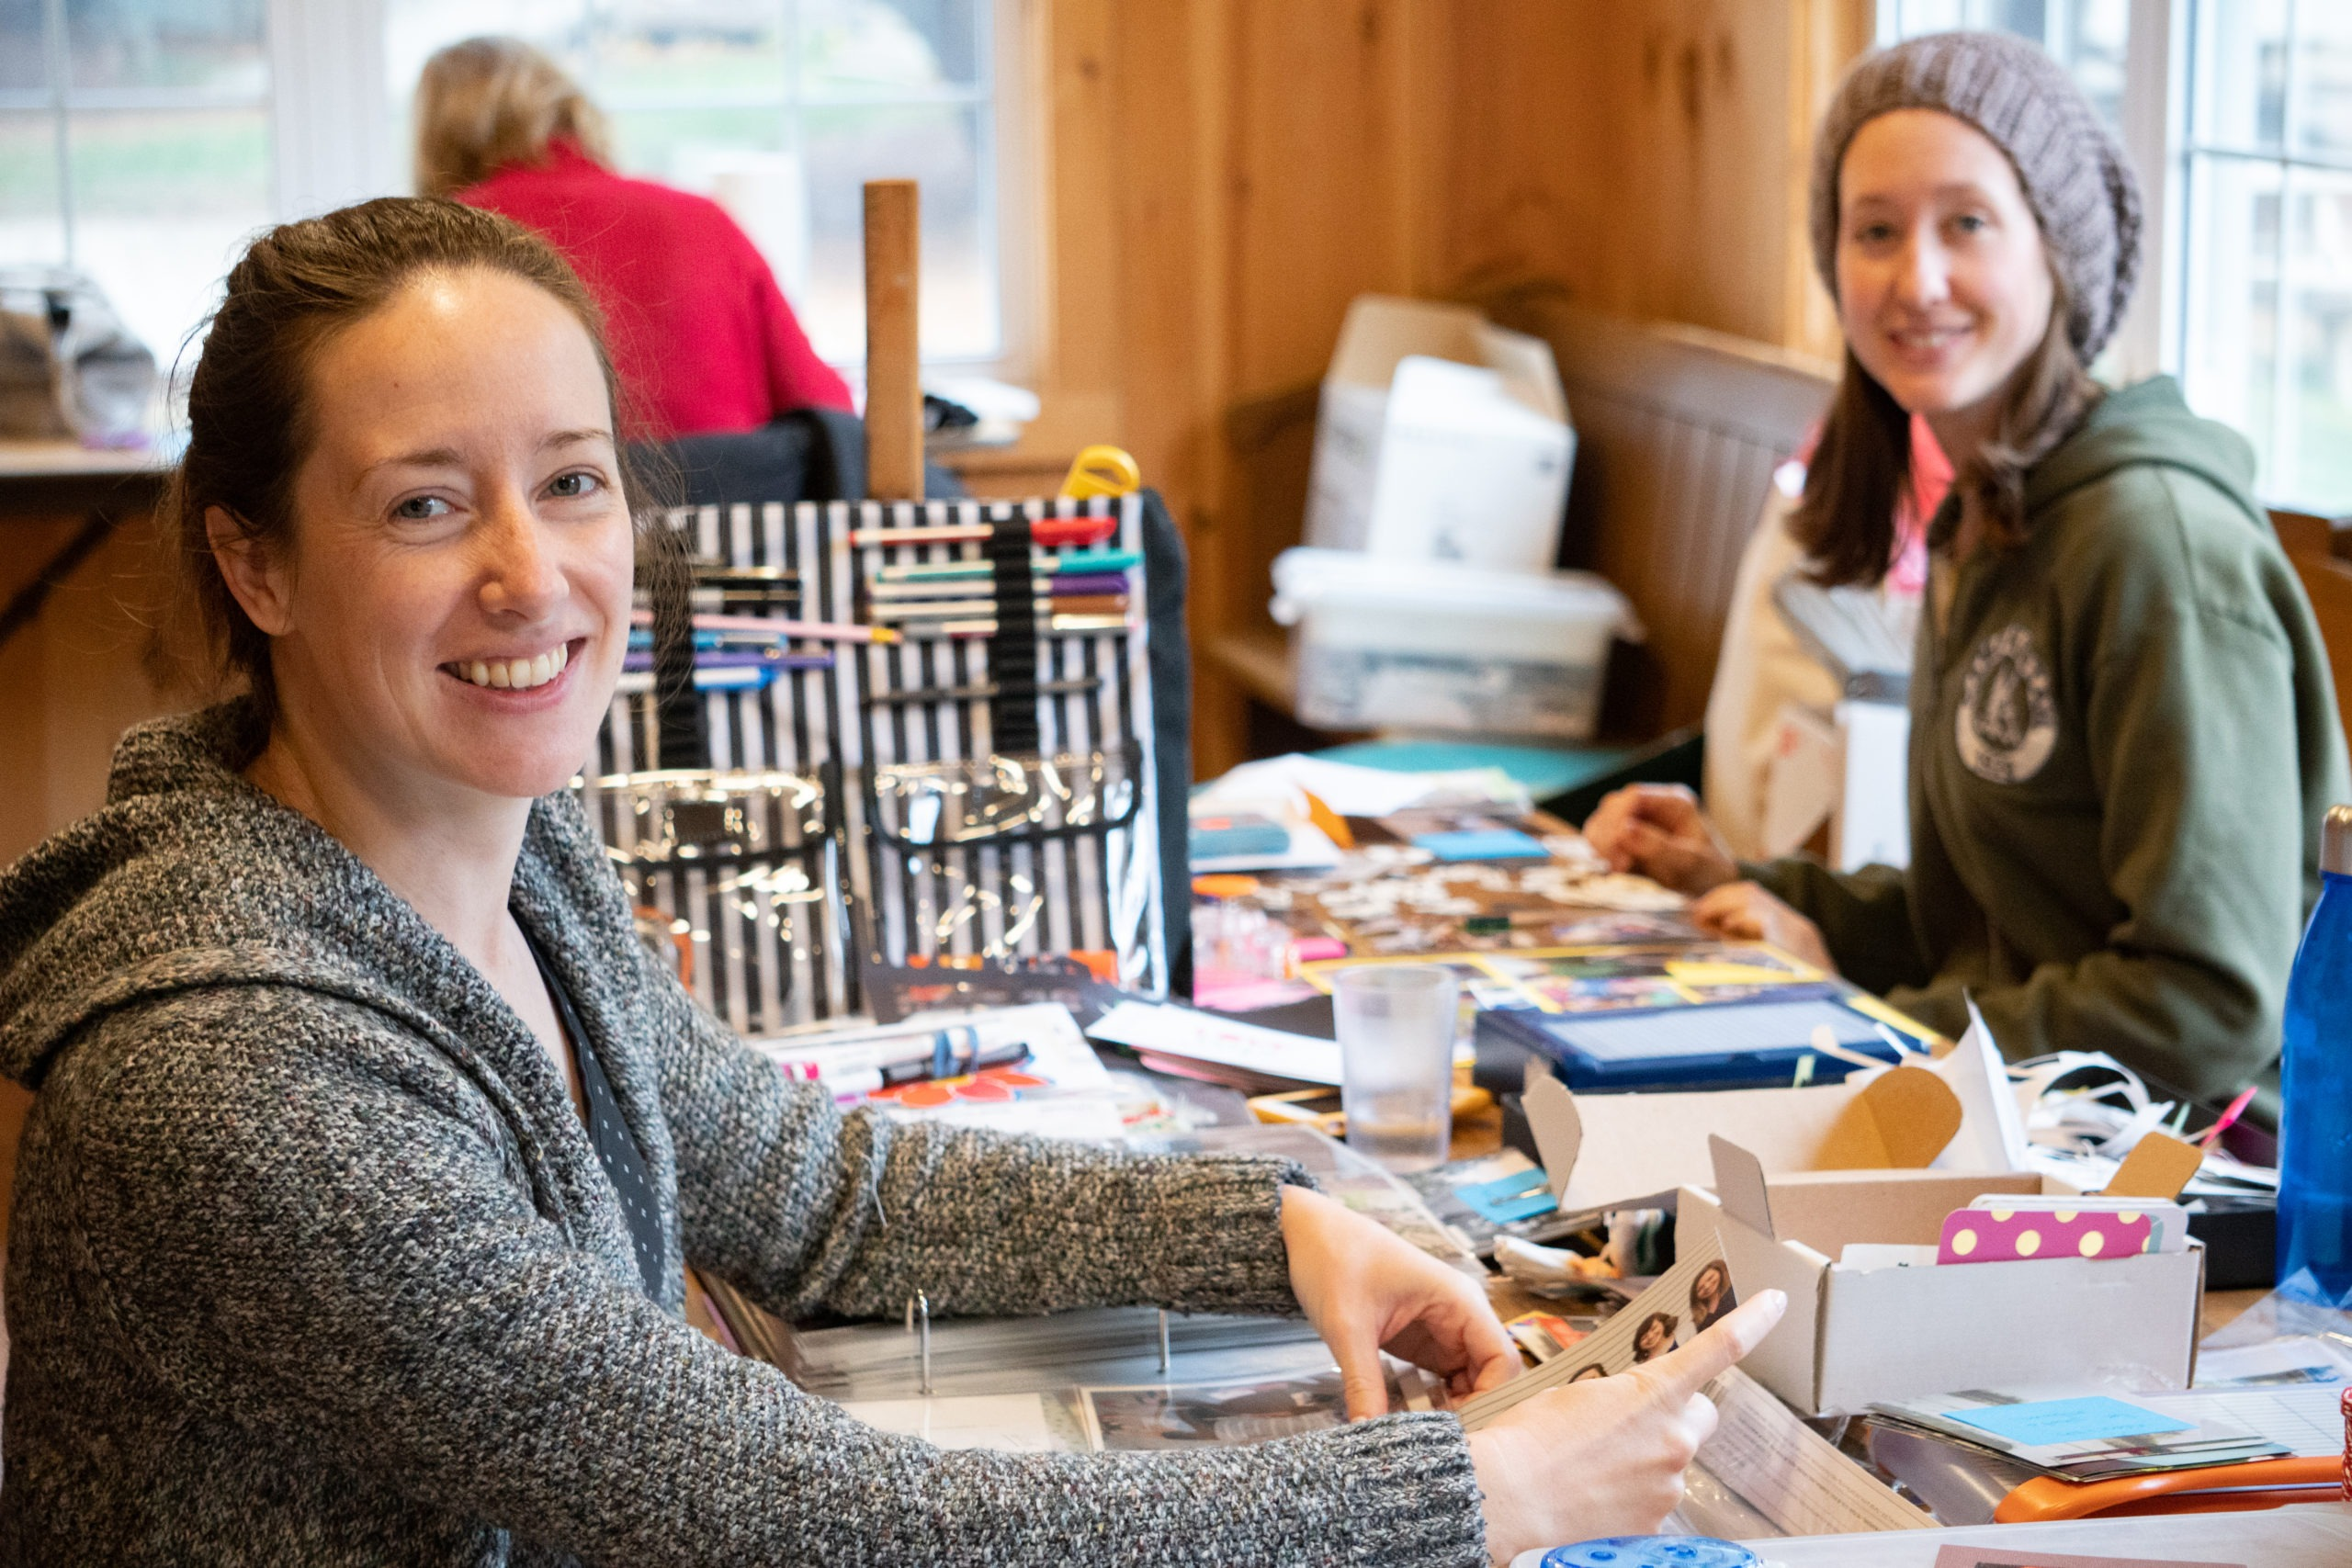 Three participants are smiling at the camera while sitting at their crafting table for Camp Kintail's Craft Retreat.